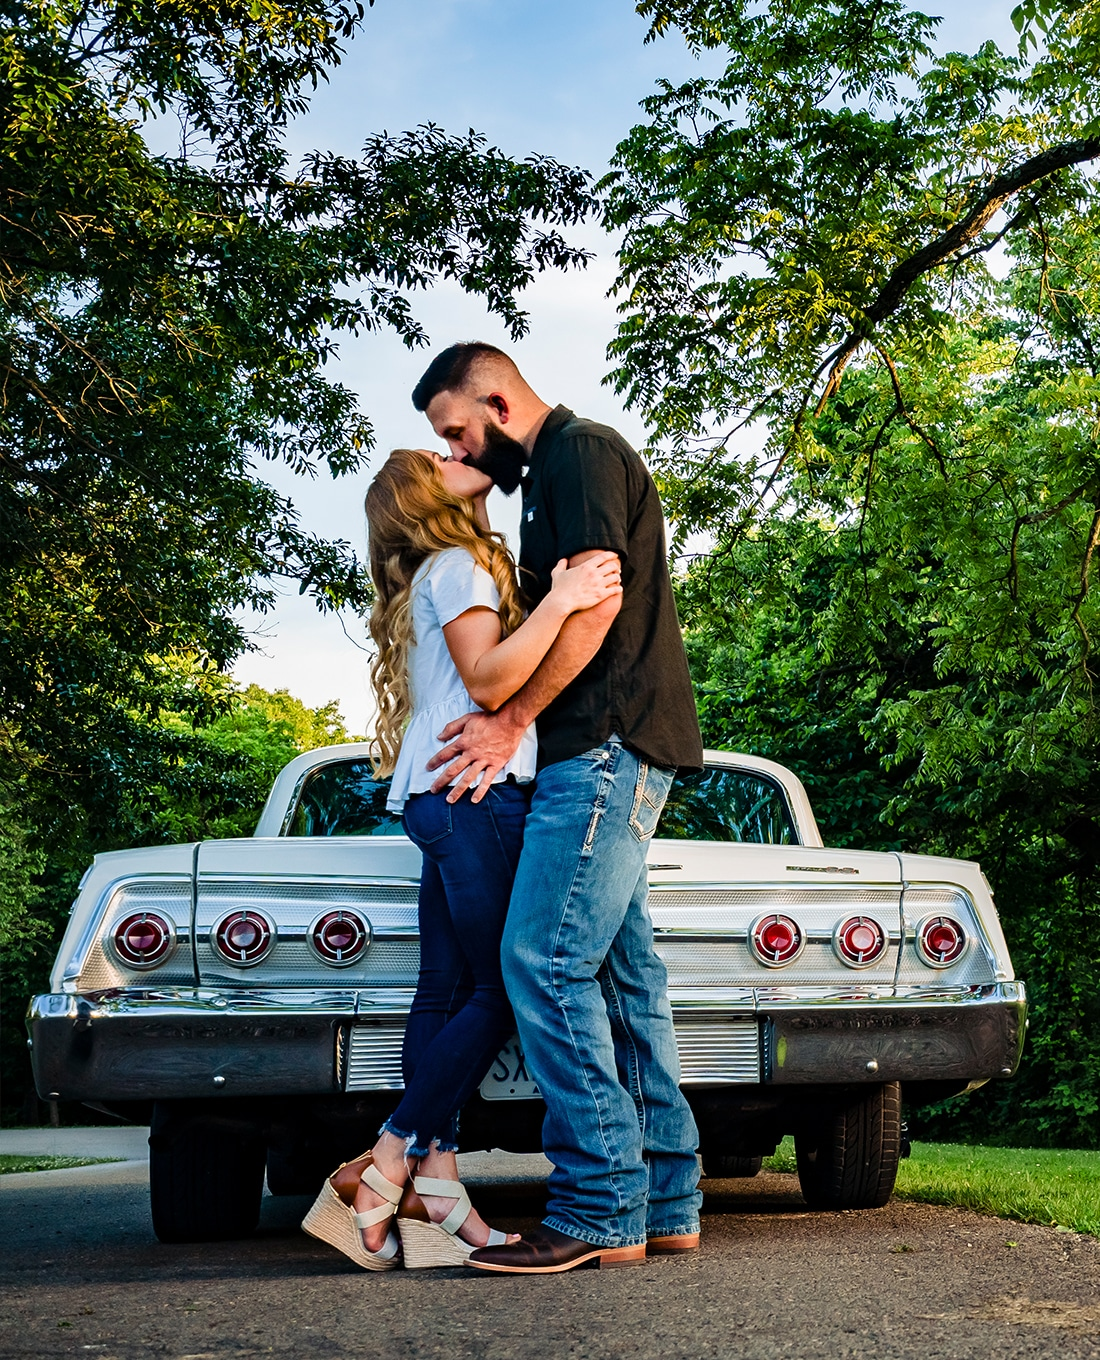 A colorful picture of a man and woman standing behind a 1970 Impala, sharing an embrace and kiss during their summer engagement session in Kansas City.